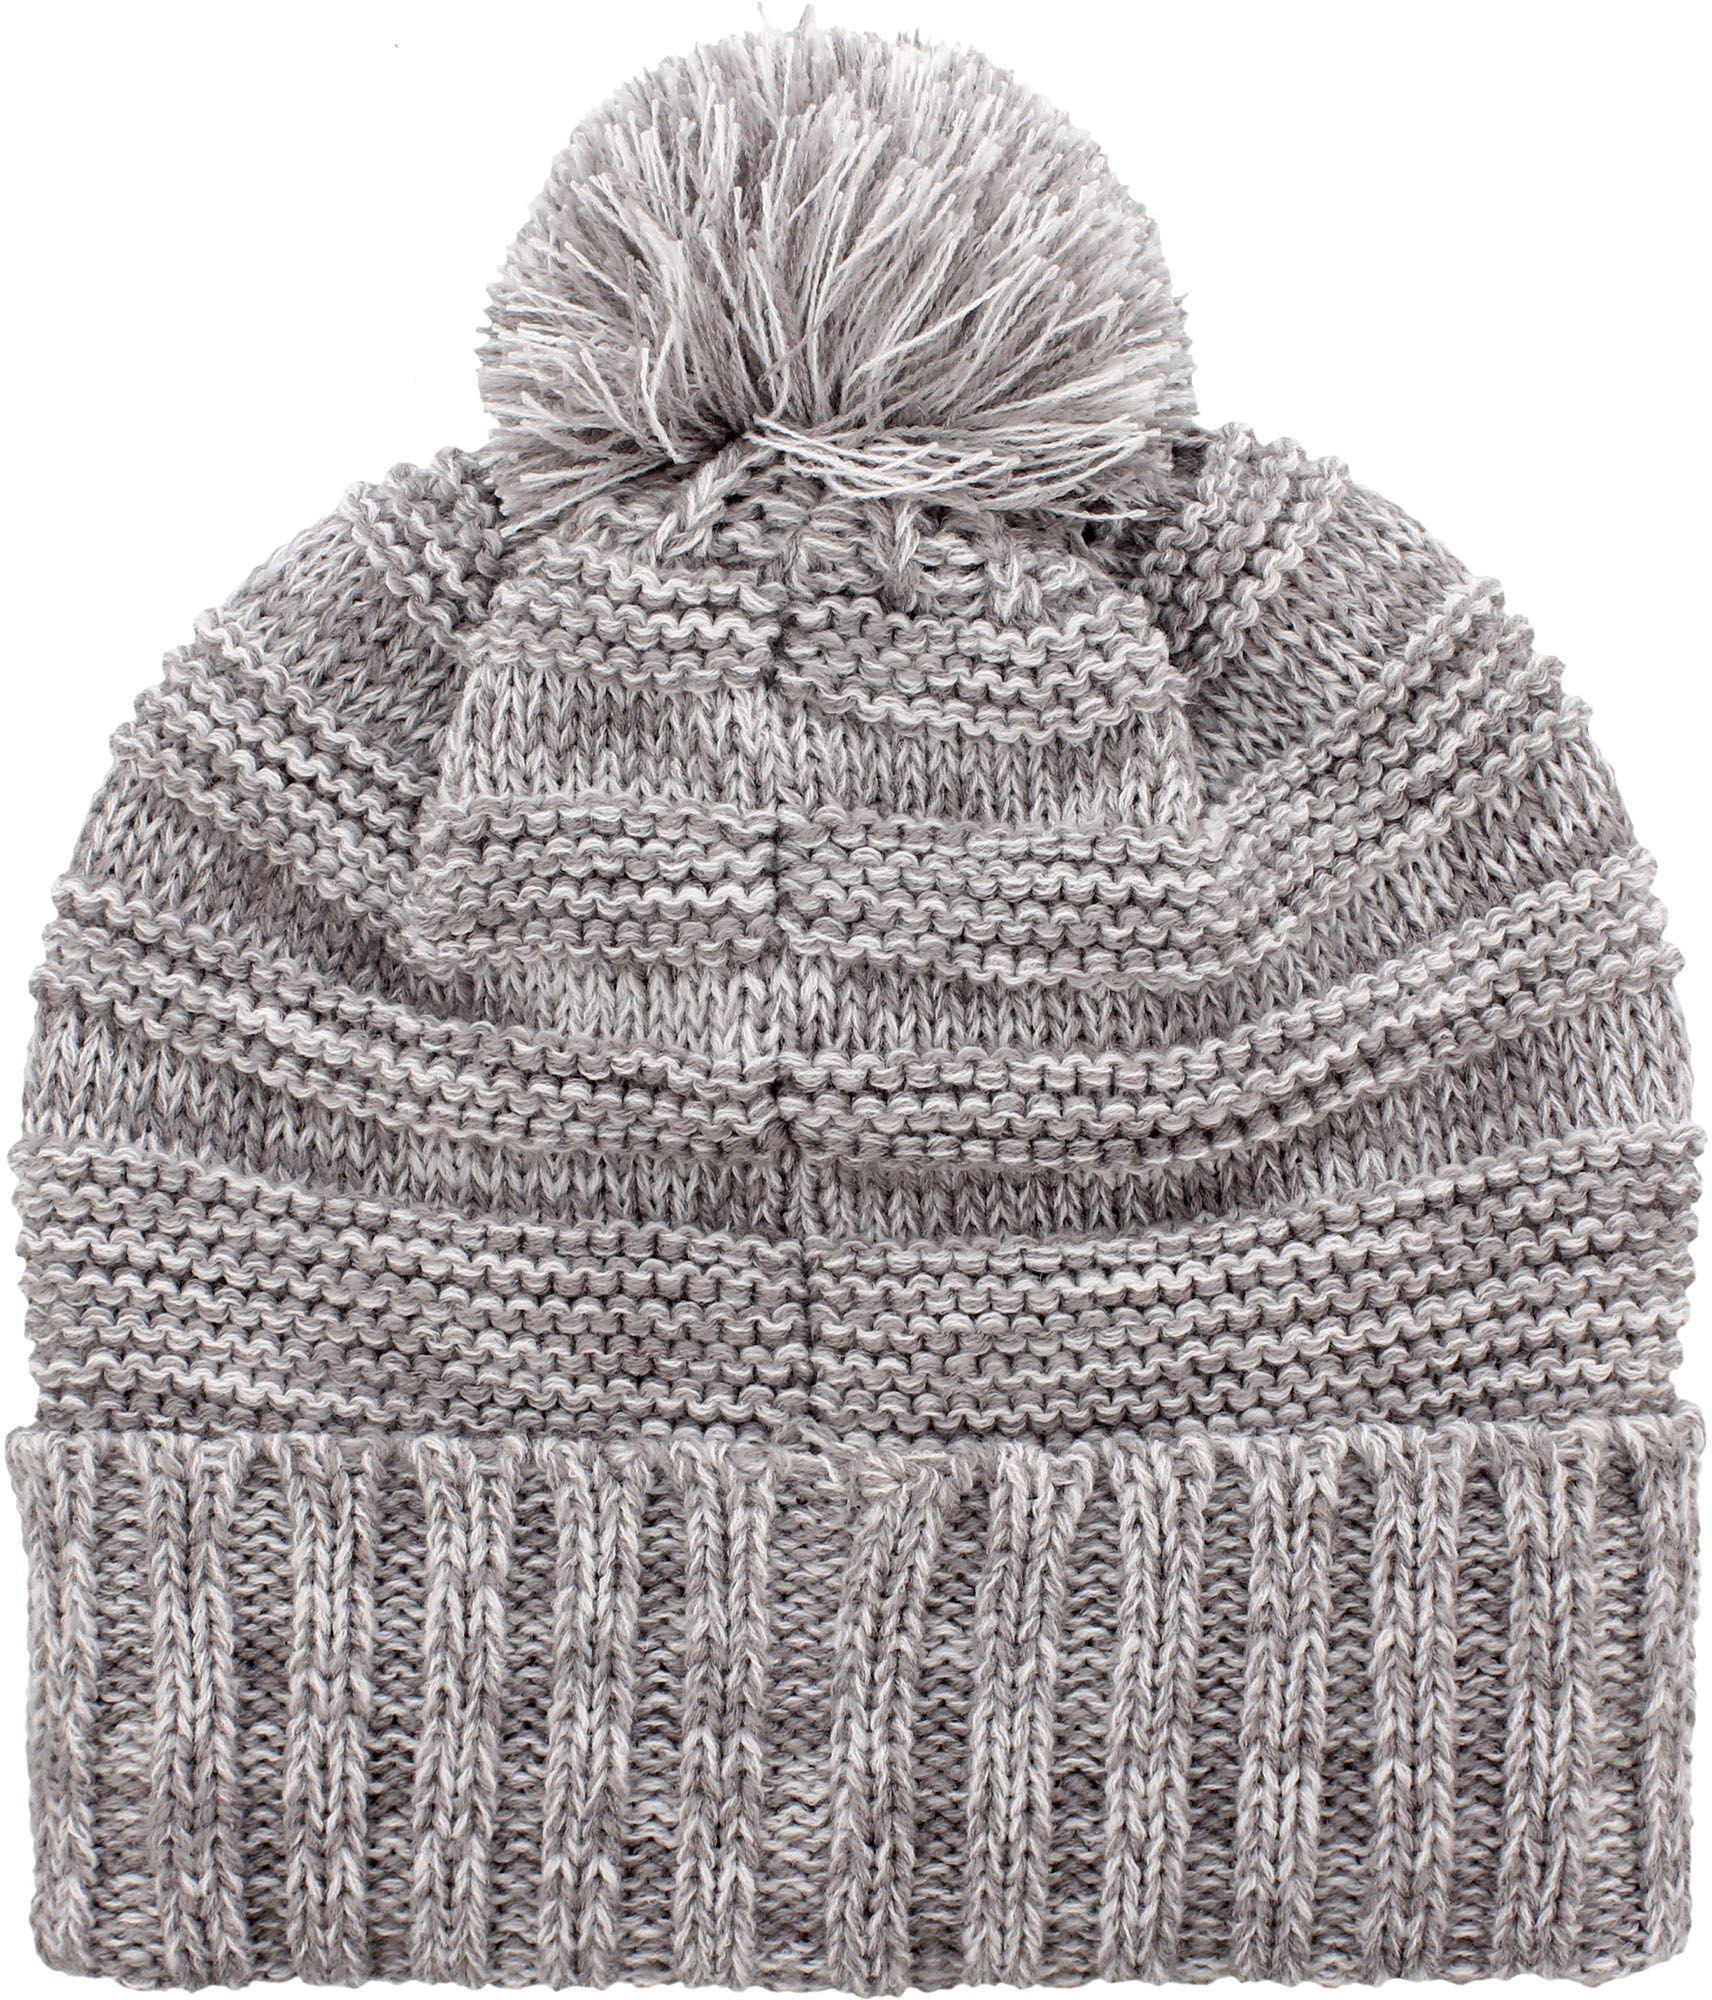 9a154a9dd36 Adidas - Gray Recon Ballie Beanie for Men - Lyst. View fullscreen